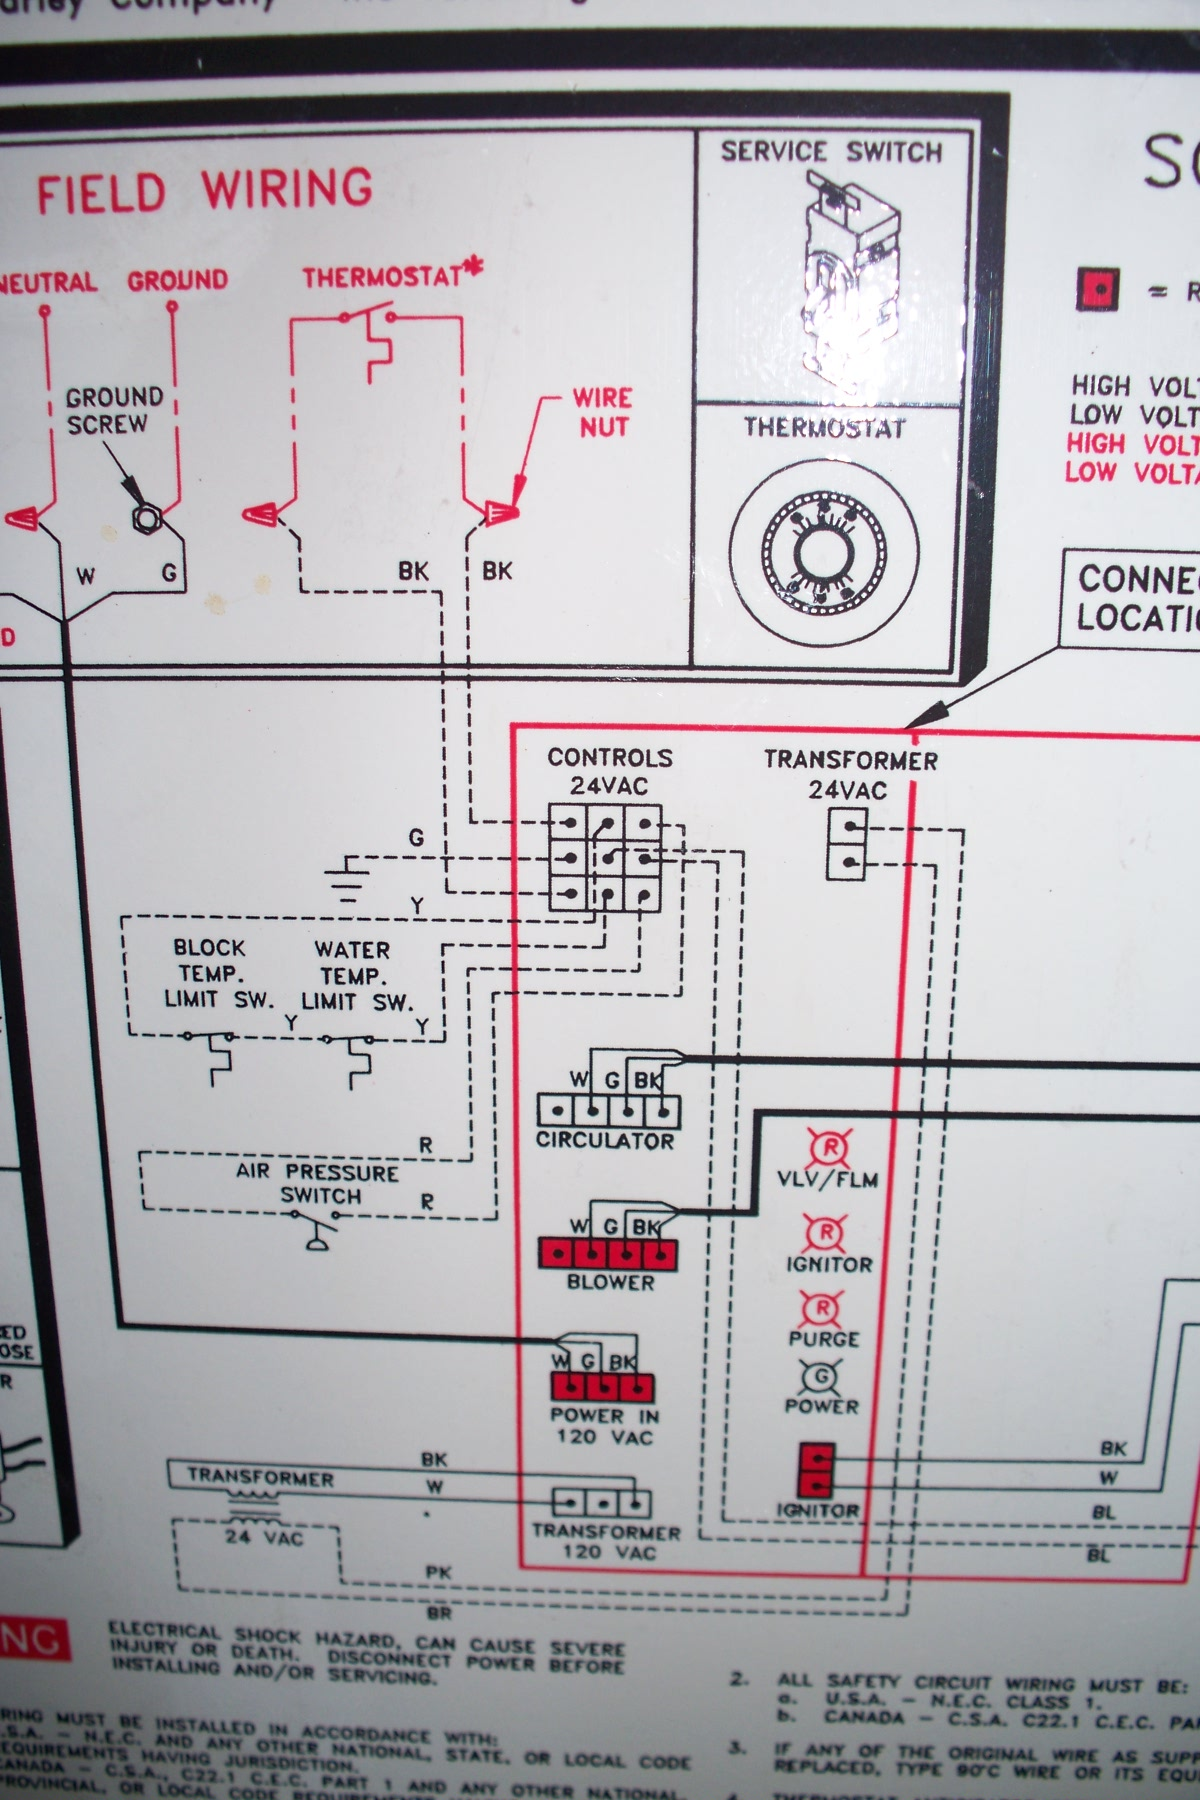 2014 01 12_010619_100_3141 i have a weil mcclain gv5 series 2 boiler with an amtrol amtrol boilermate wiring diagram at n-0.co